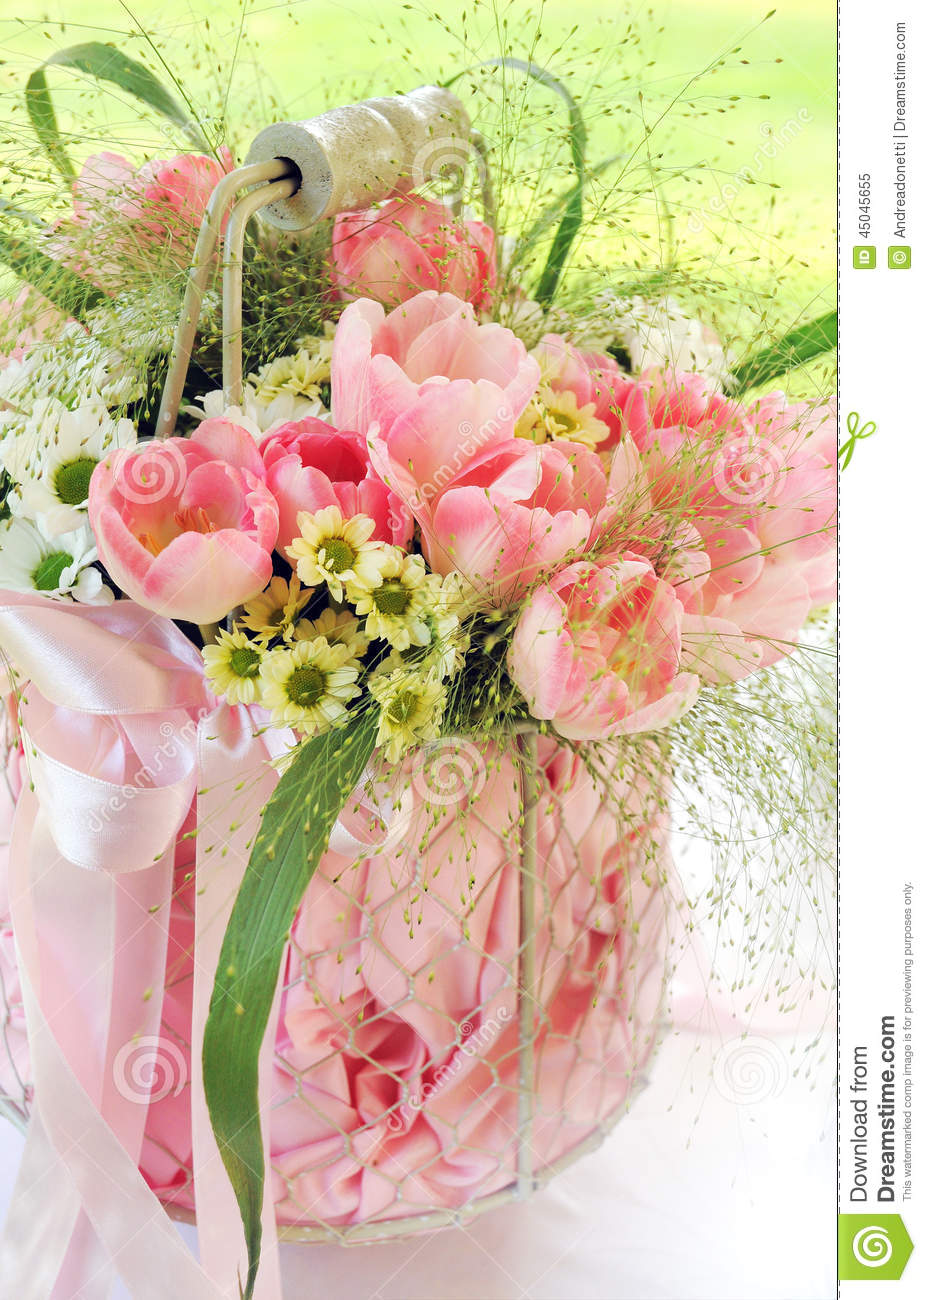 Bouquet Of Fresh Pink Flowers In A Vase Stock Image Image Of